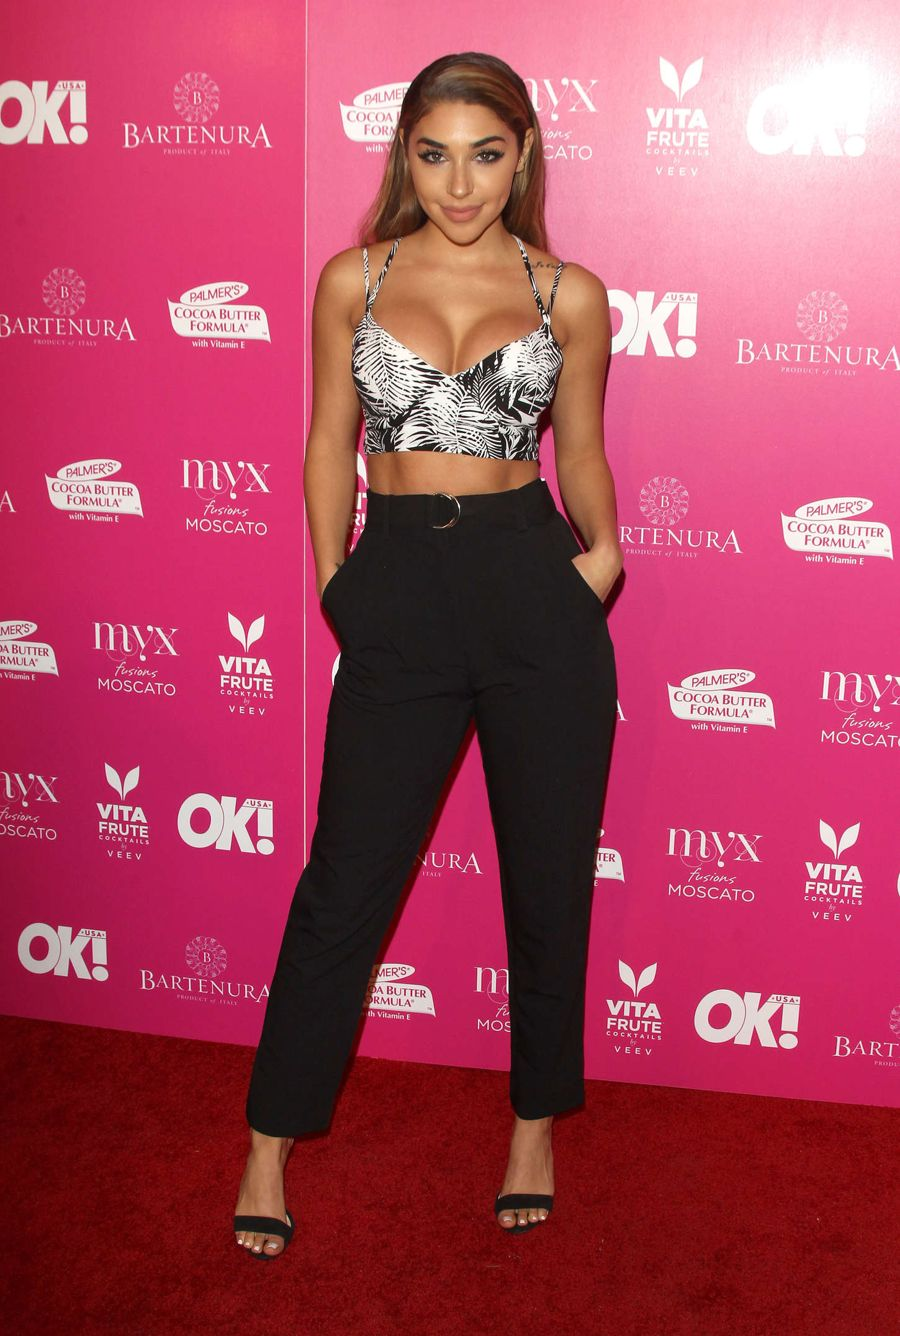 Chantel Jeffries - OK! Magazine's Event in Hollywood